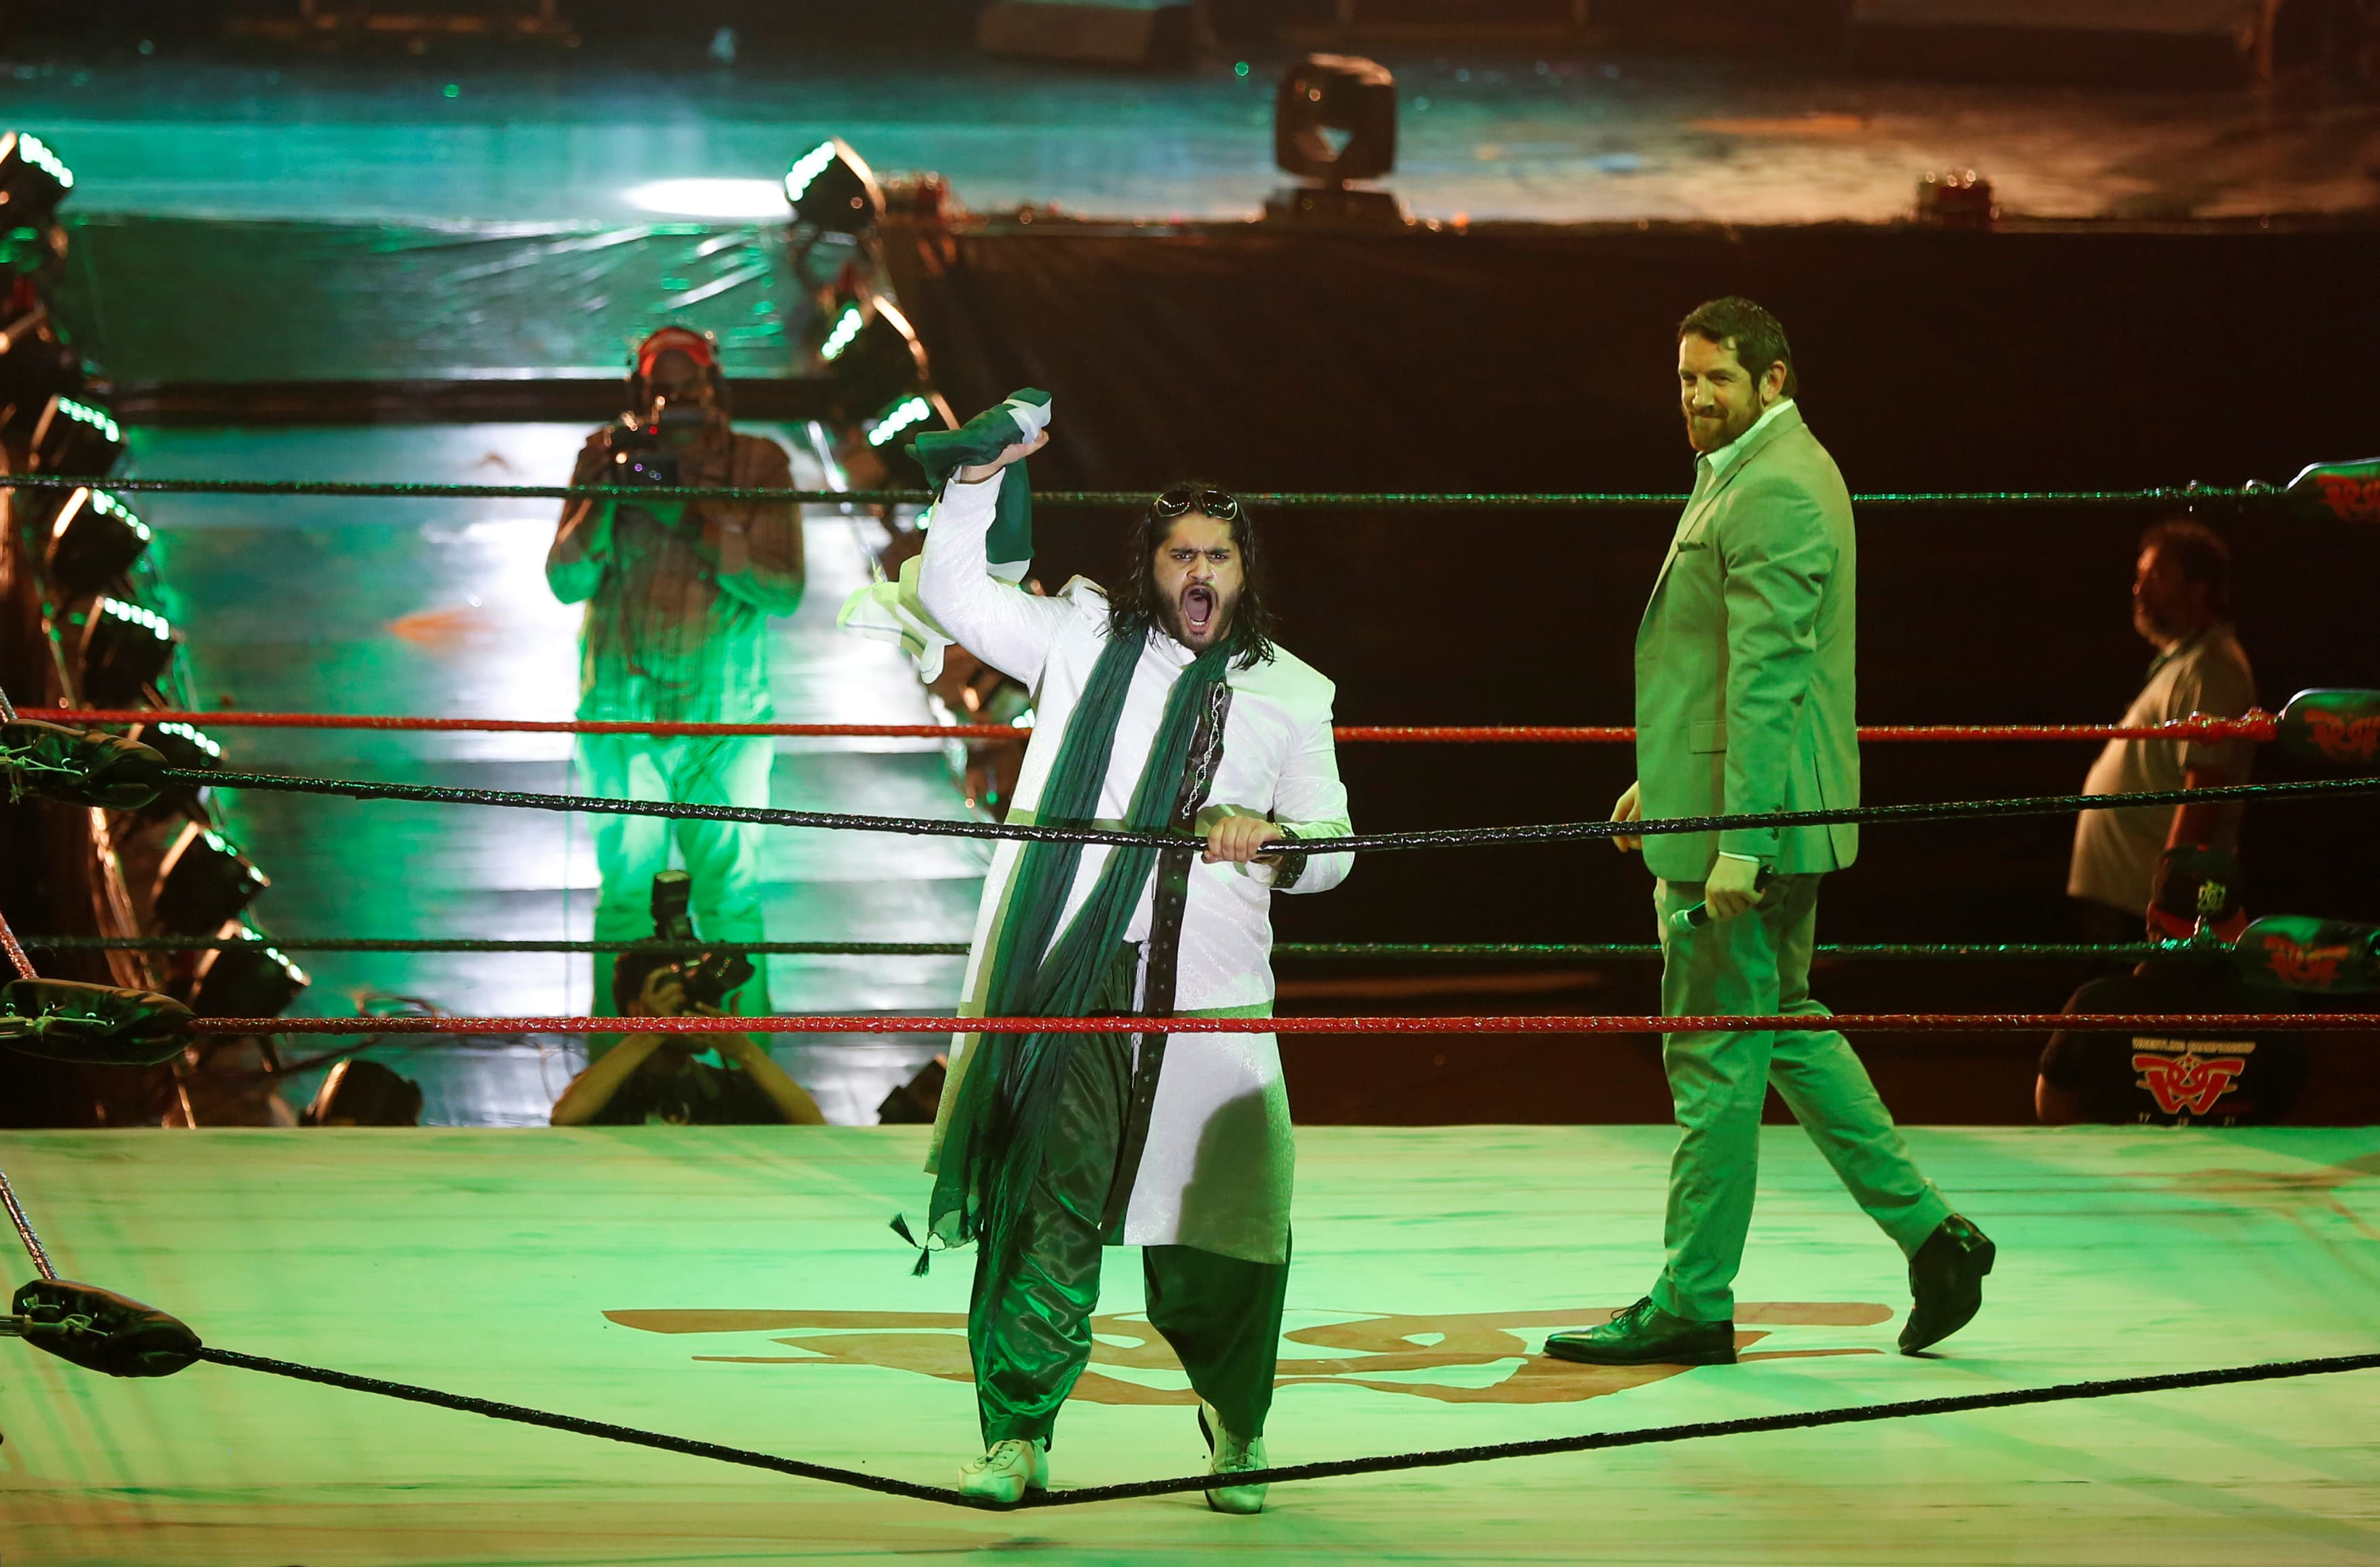 Pakistani wrestler Baadshah Pehalwan Khan (C) holds a national flag as he reacts to the fans during the opening ceremony of the Pro Wrestling Entertainment show.